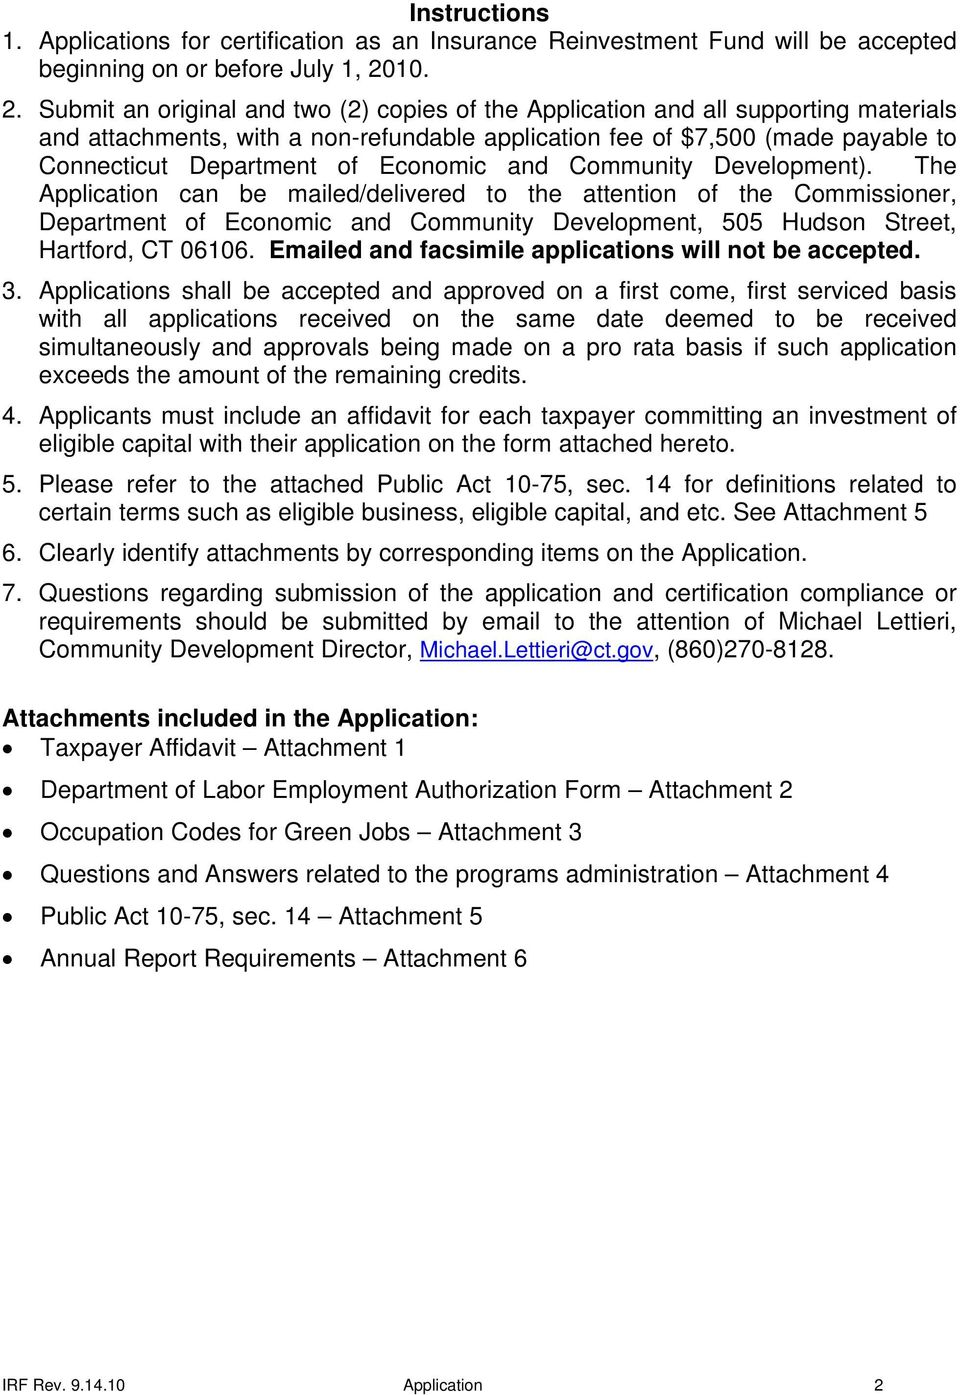 Submit an original and two (2) copies of the Application and all supporting materials and attachments, with a non-refundable application fee of $7,500 (made payable to Connecticut Department of